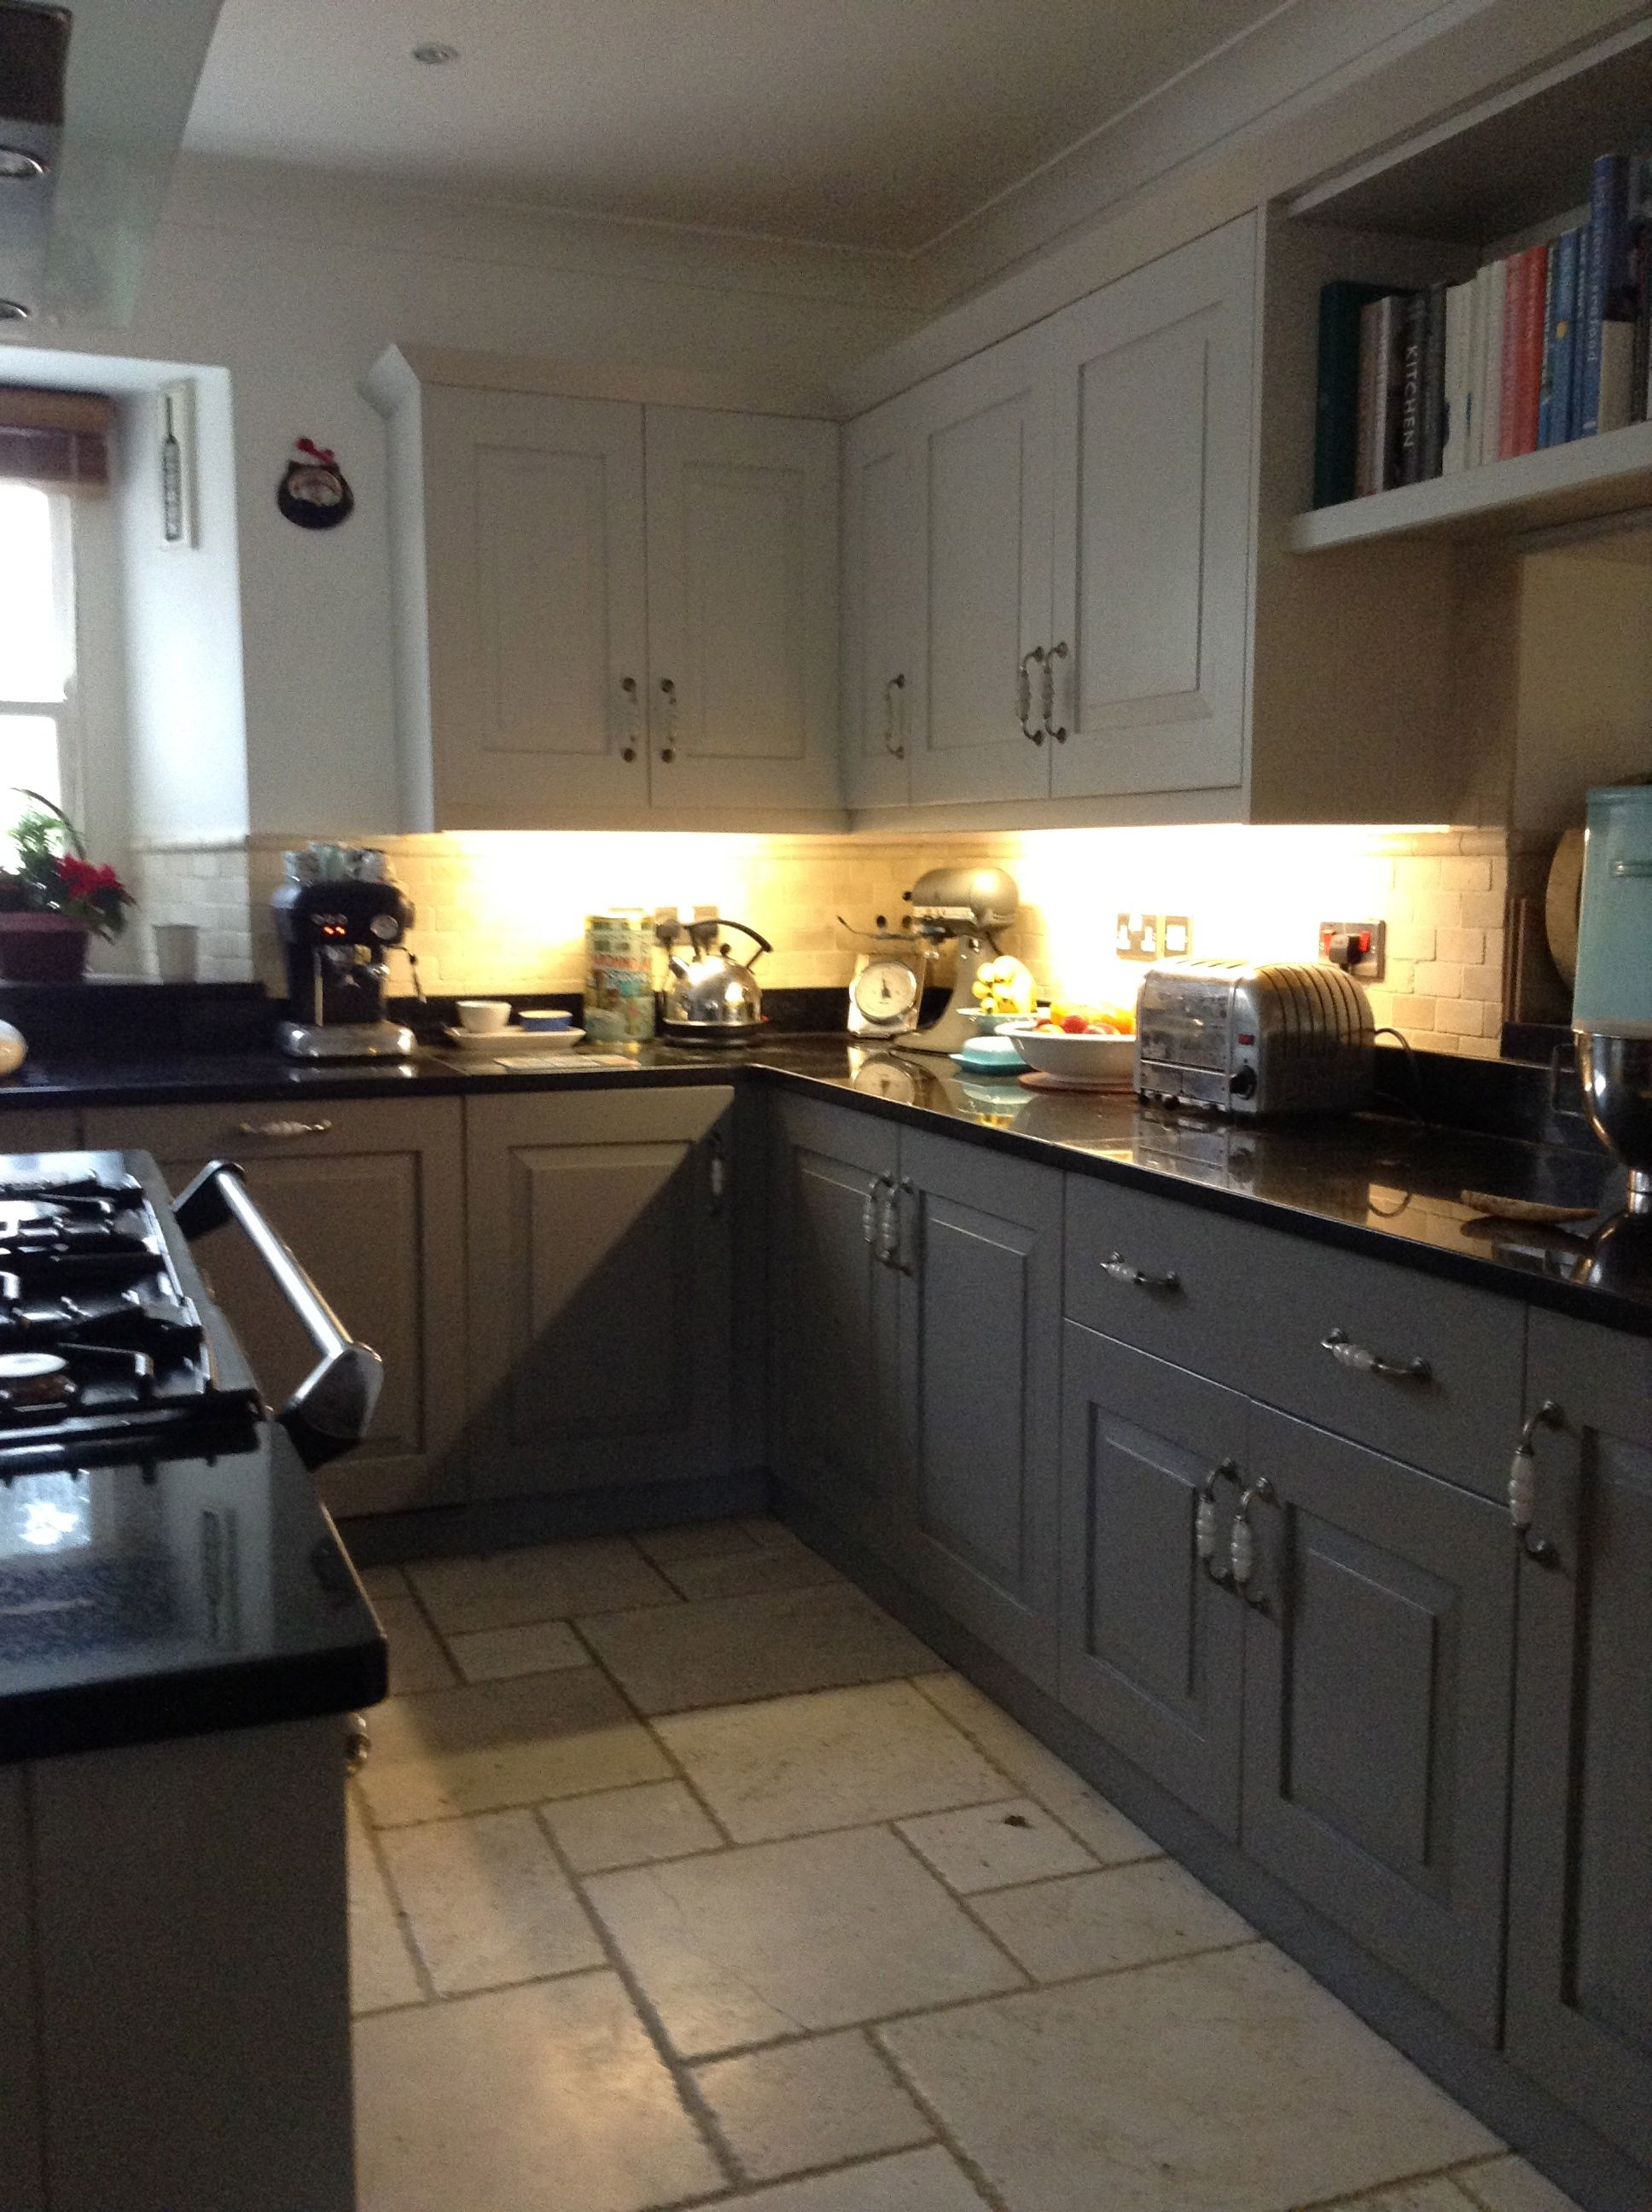 Best Painted Kitchen Farrow And Ball Cornforth White And Mole 400 x 300